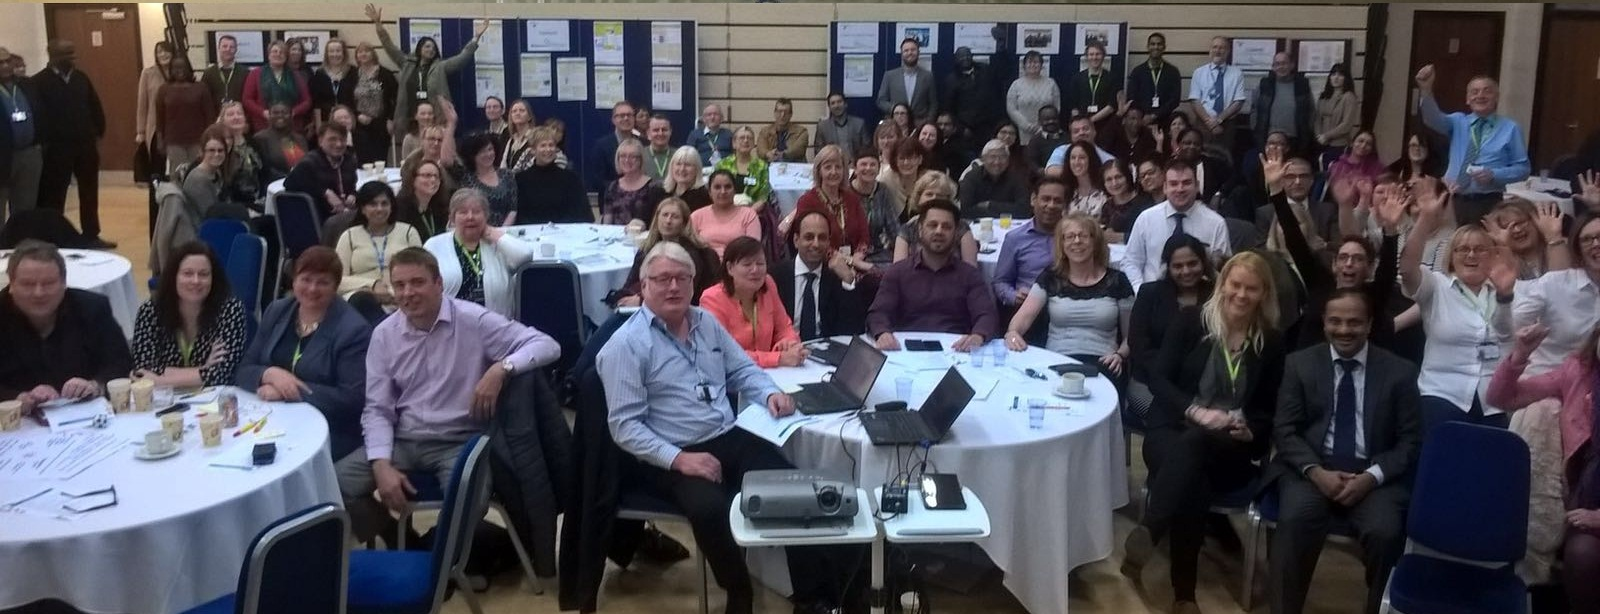 Bedfordshire and Luton conference photo - trimmed